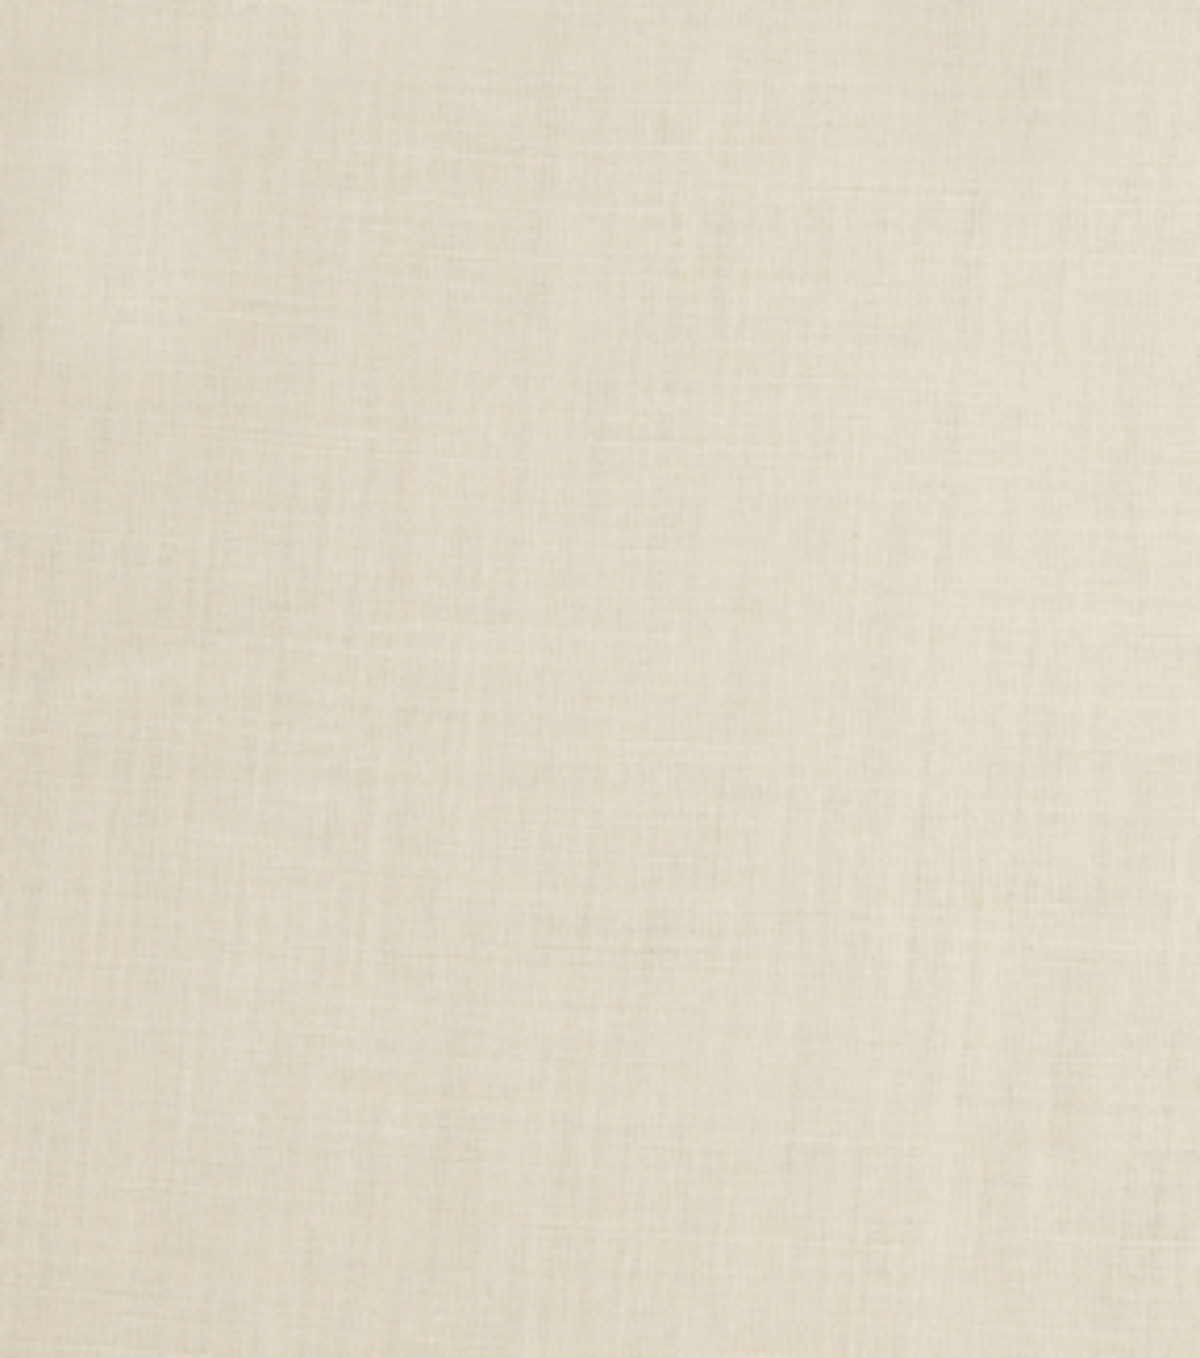 Home Decor 8\u0022x8\u0022 Fabric Swatch-Signature Series Sigourney Oyster